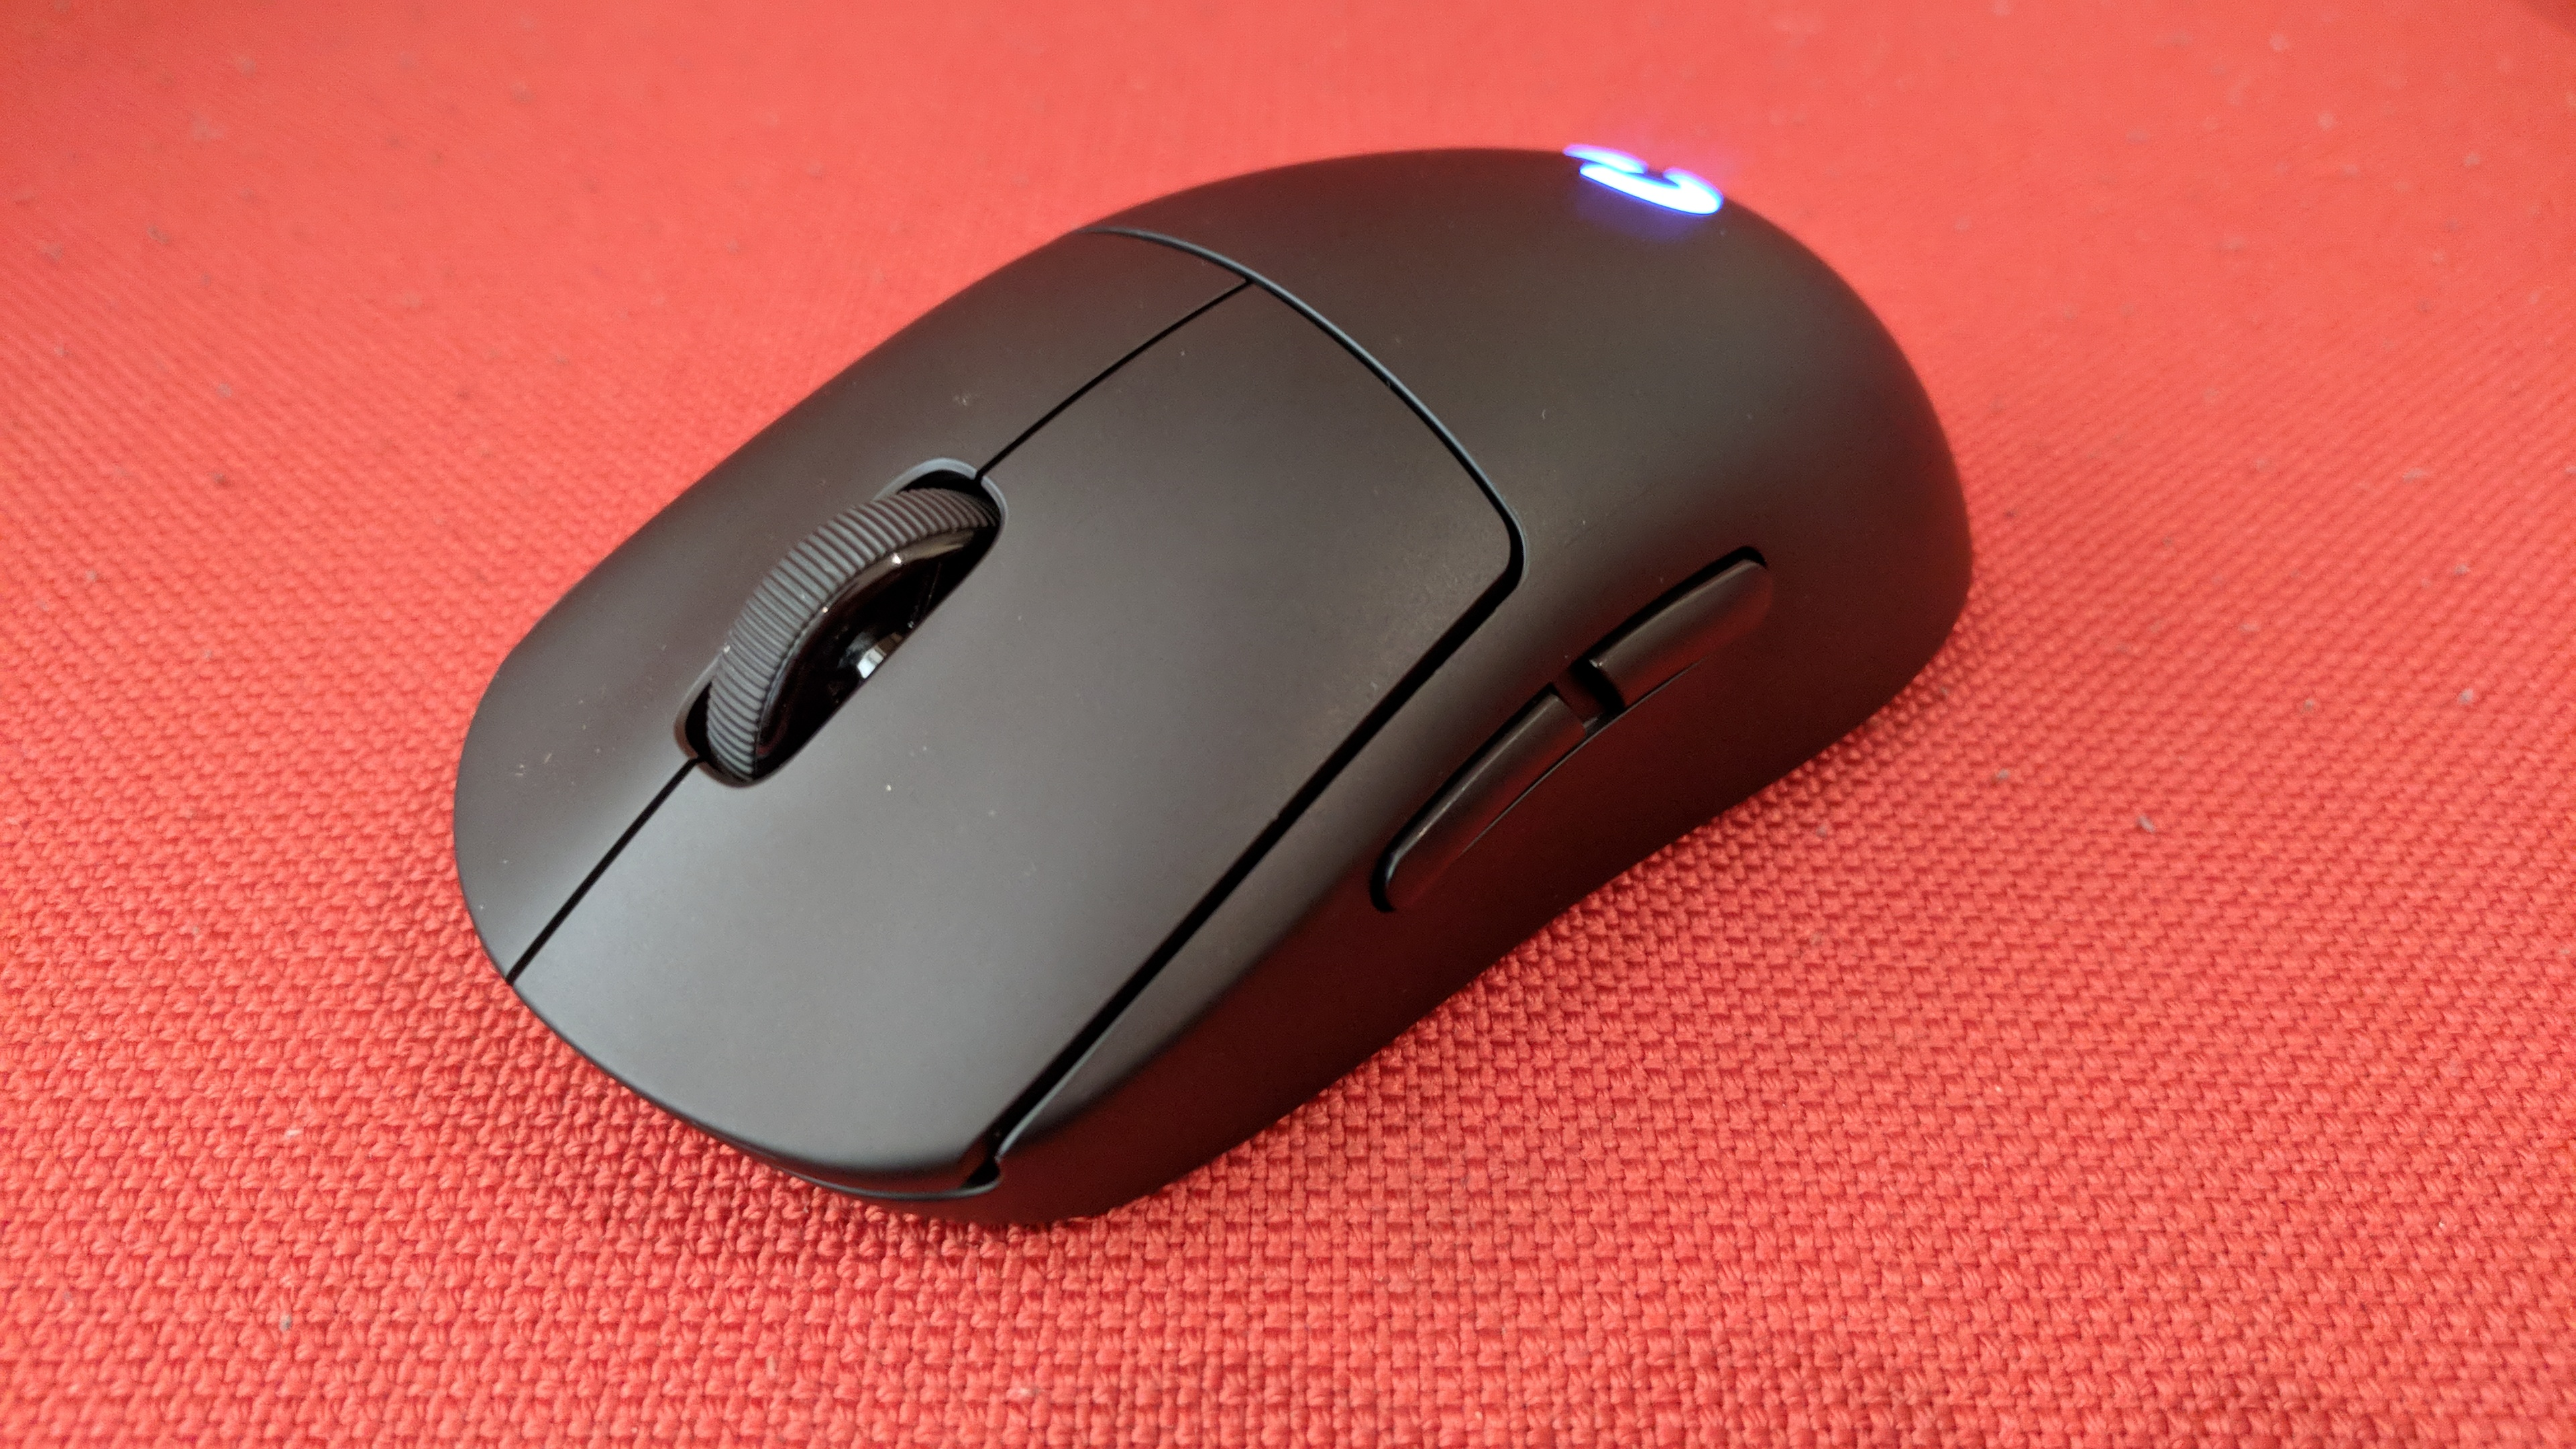 Logitech's new flagship G Pro Wireless gaming mouse is an